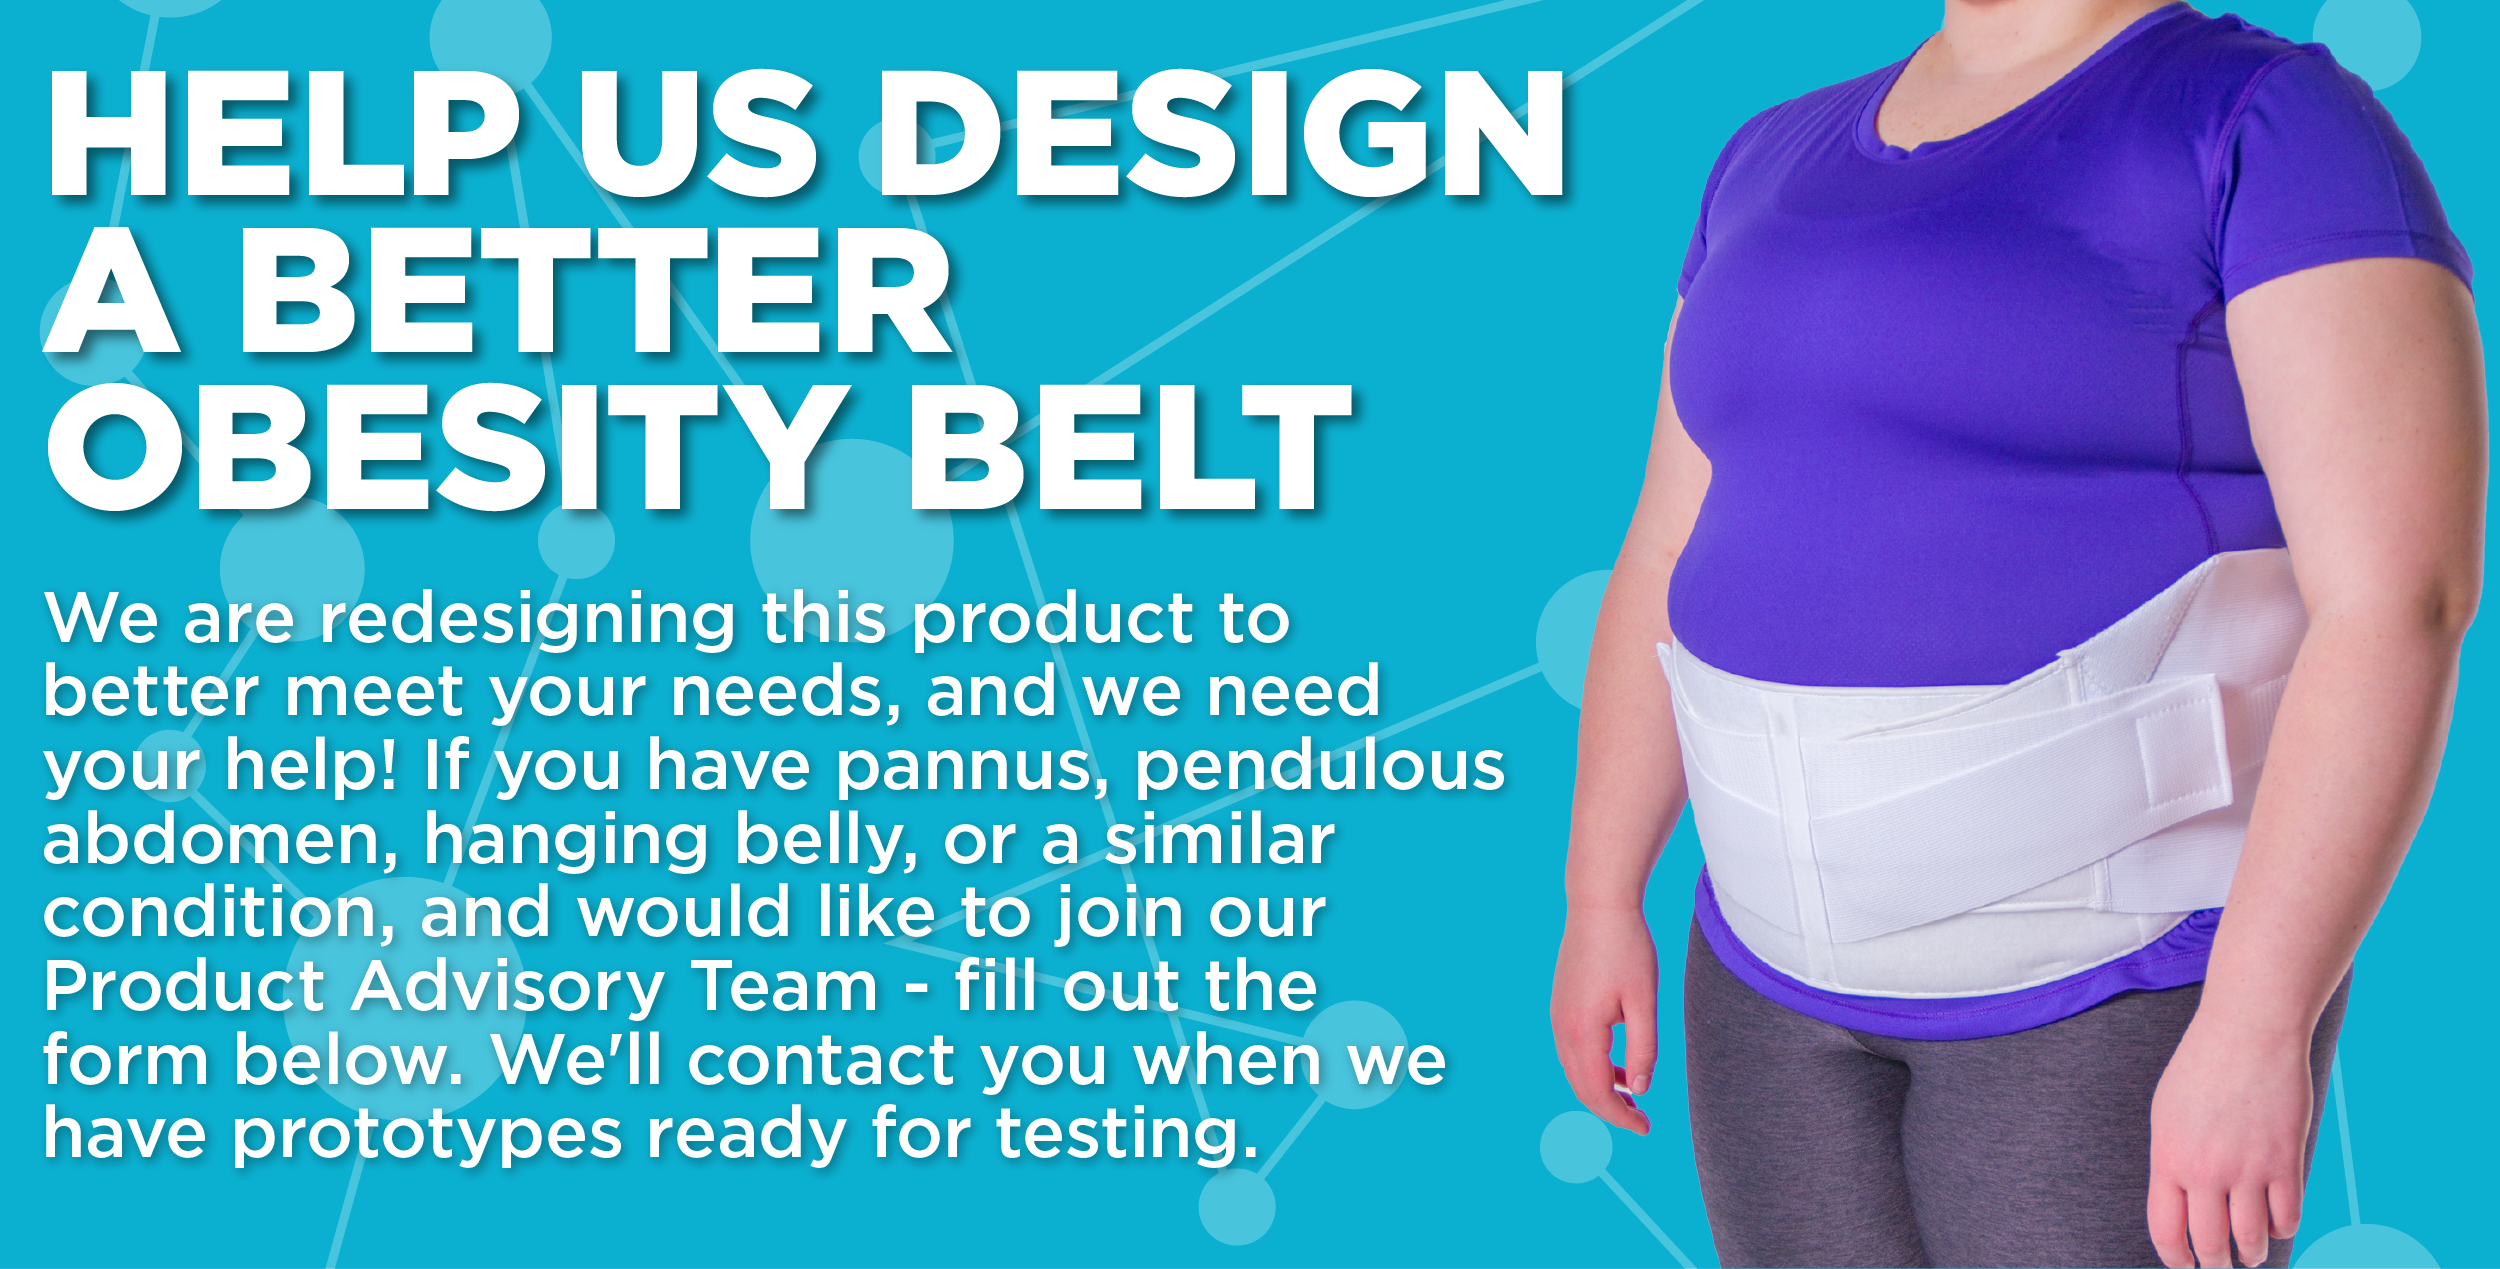 Help us design a better obesity belt by applying to join our product advisory team below